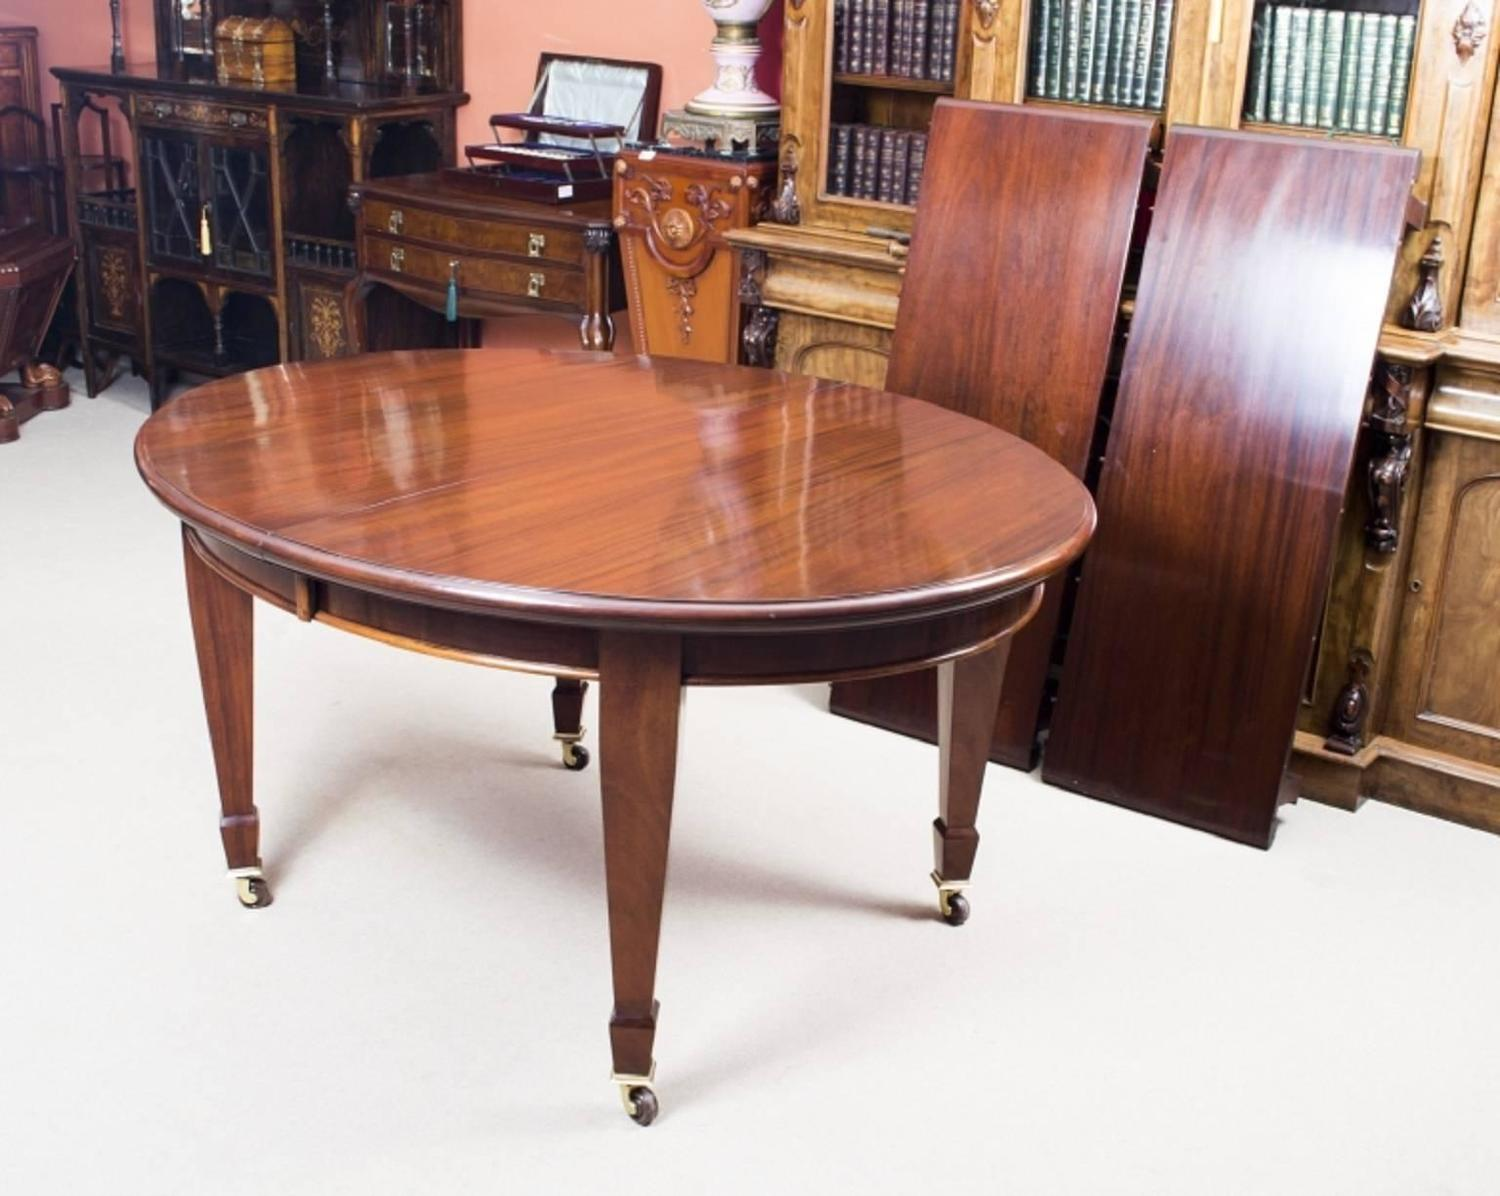 Antique Edwardian Mahogany Dining Table, circa 1900 For Sale at ...